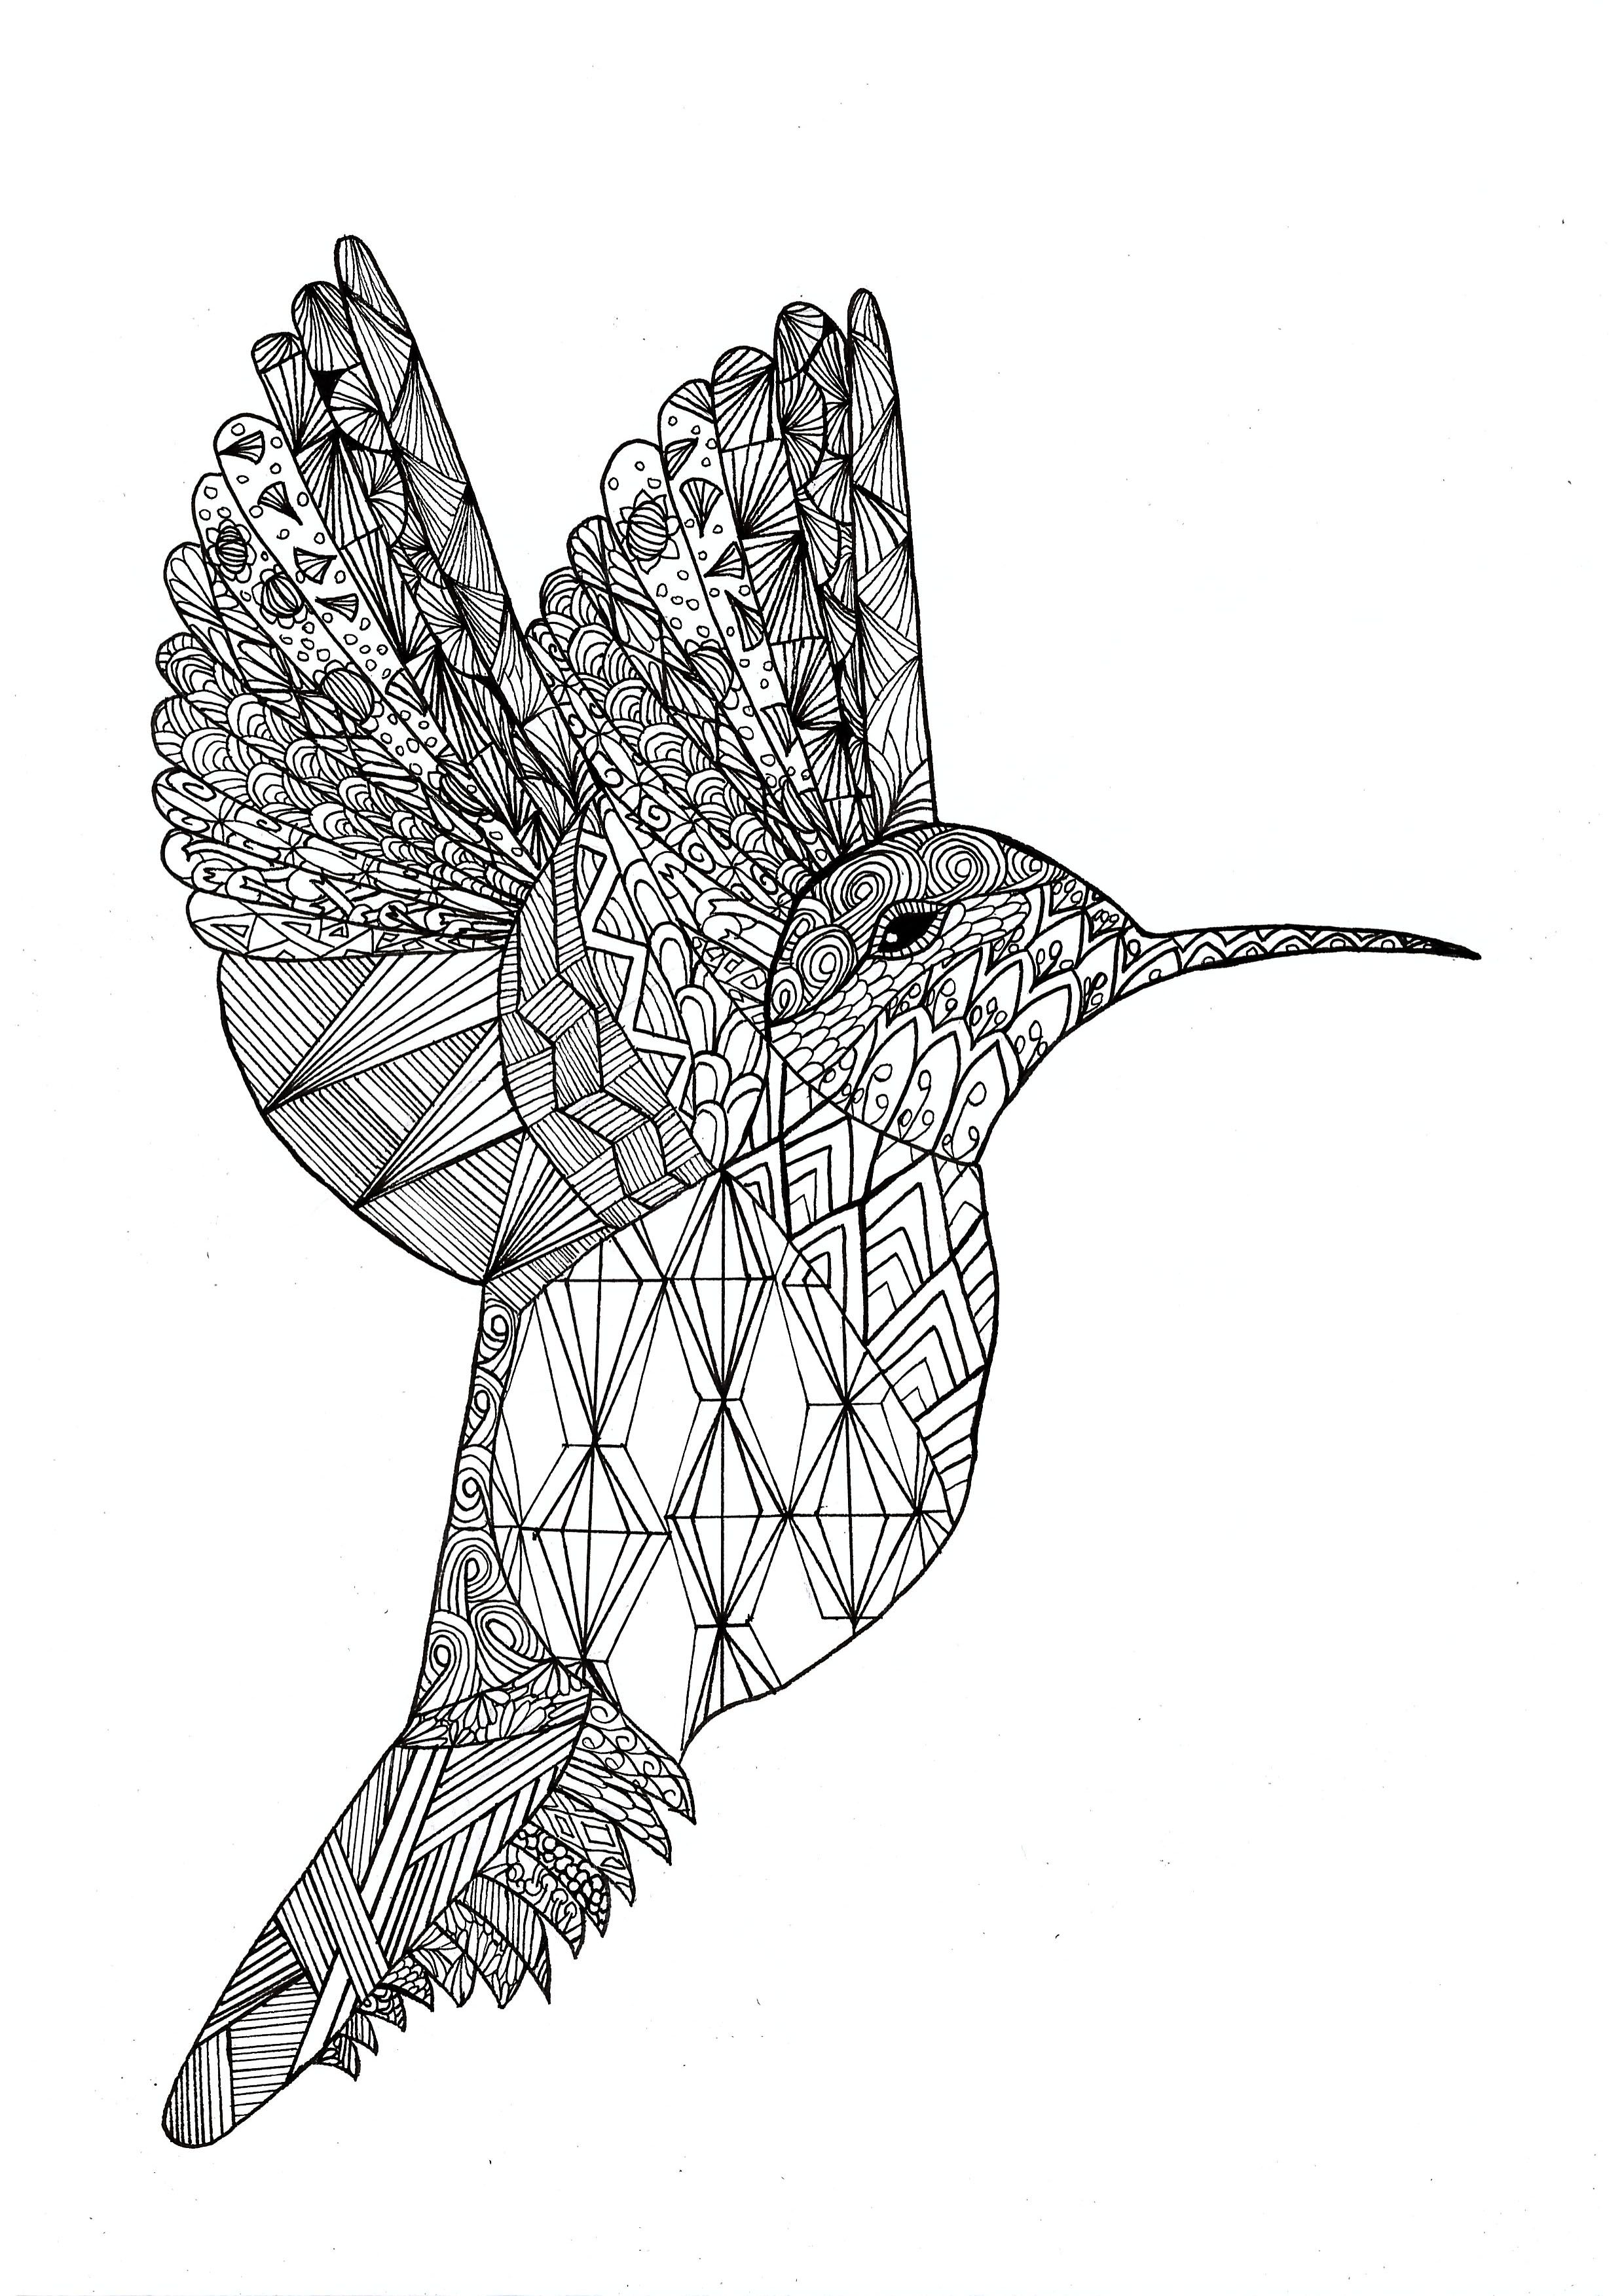 Coloring Page Of A Hummingbird In Zentangle Style